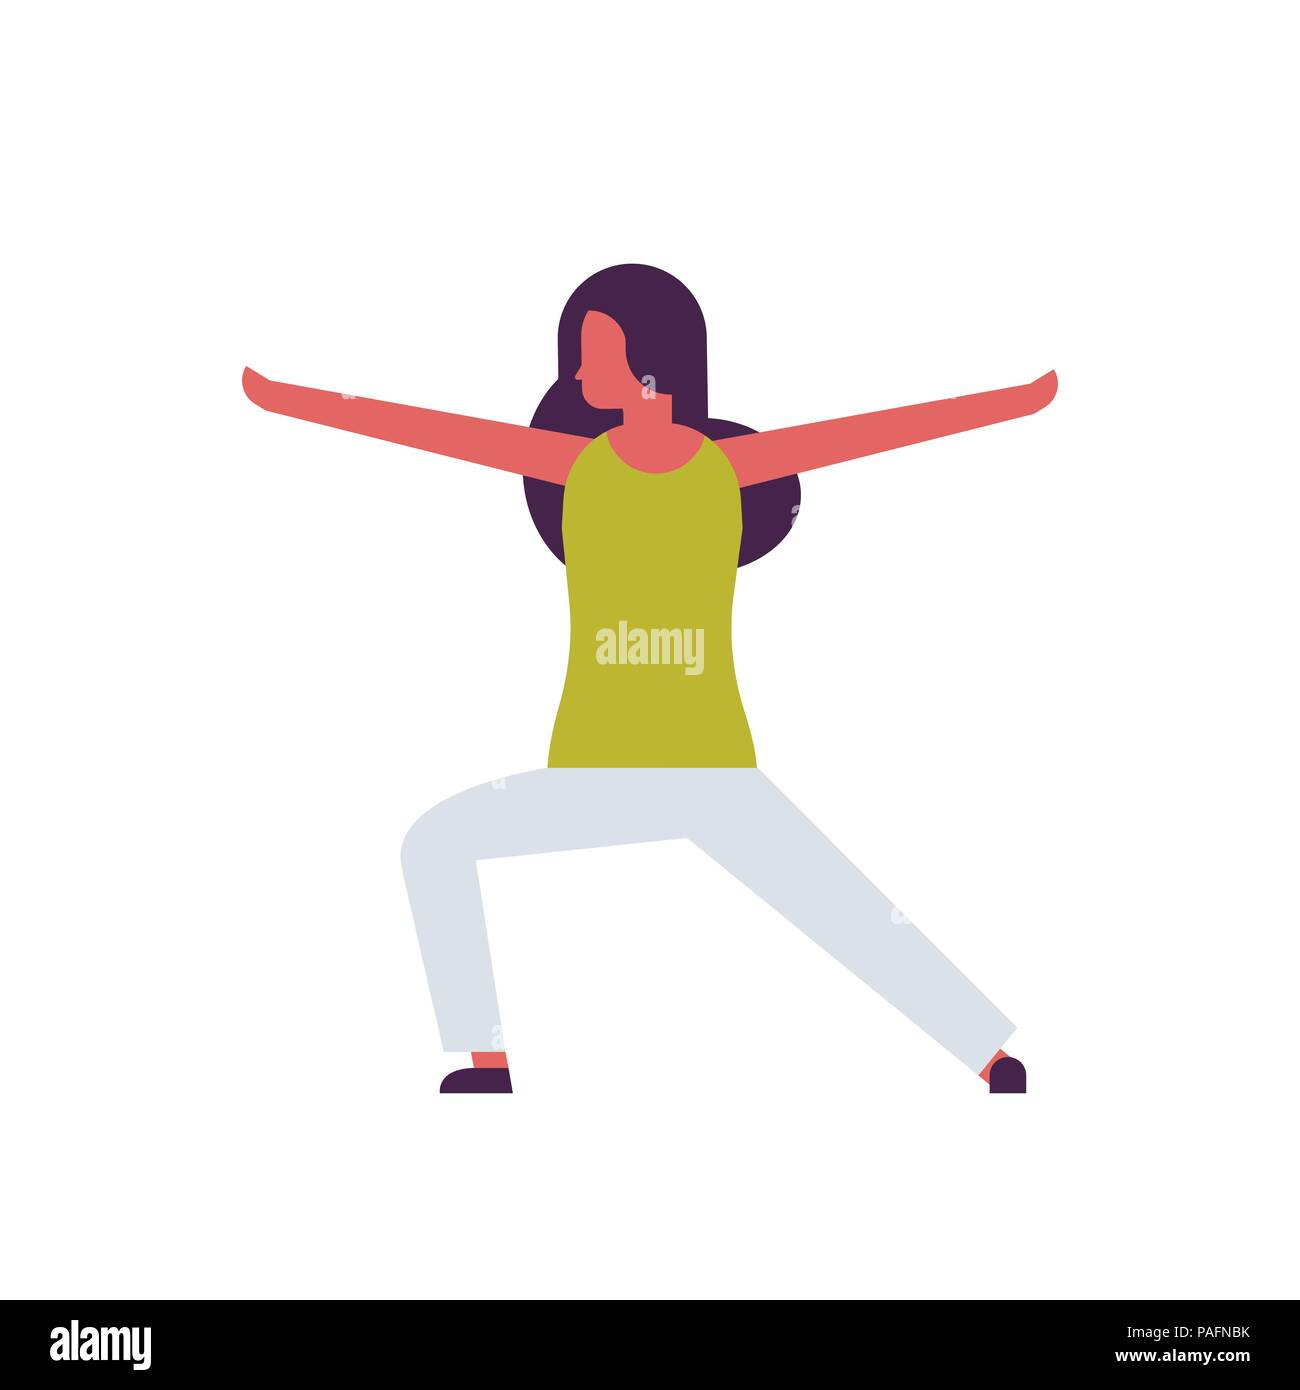 Woman Doing Yoga Exercises Female Cartoon Character Fitness Activities Isolated Diversity Poses Healthy Lifestyle Concept Full Length Flat Stock Vector Image Art Alamy